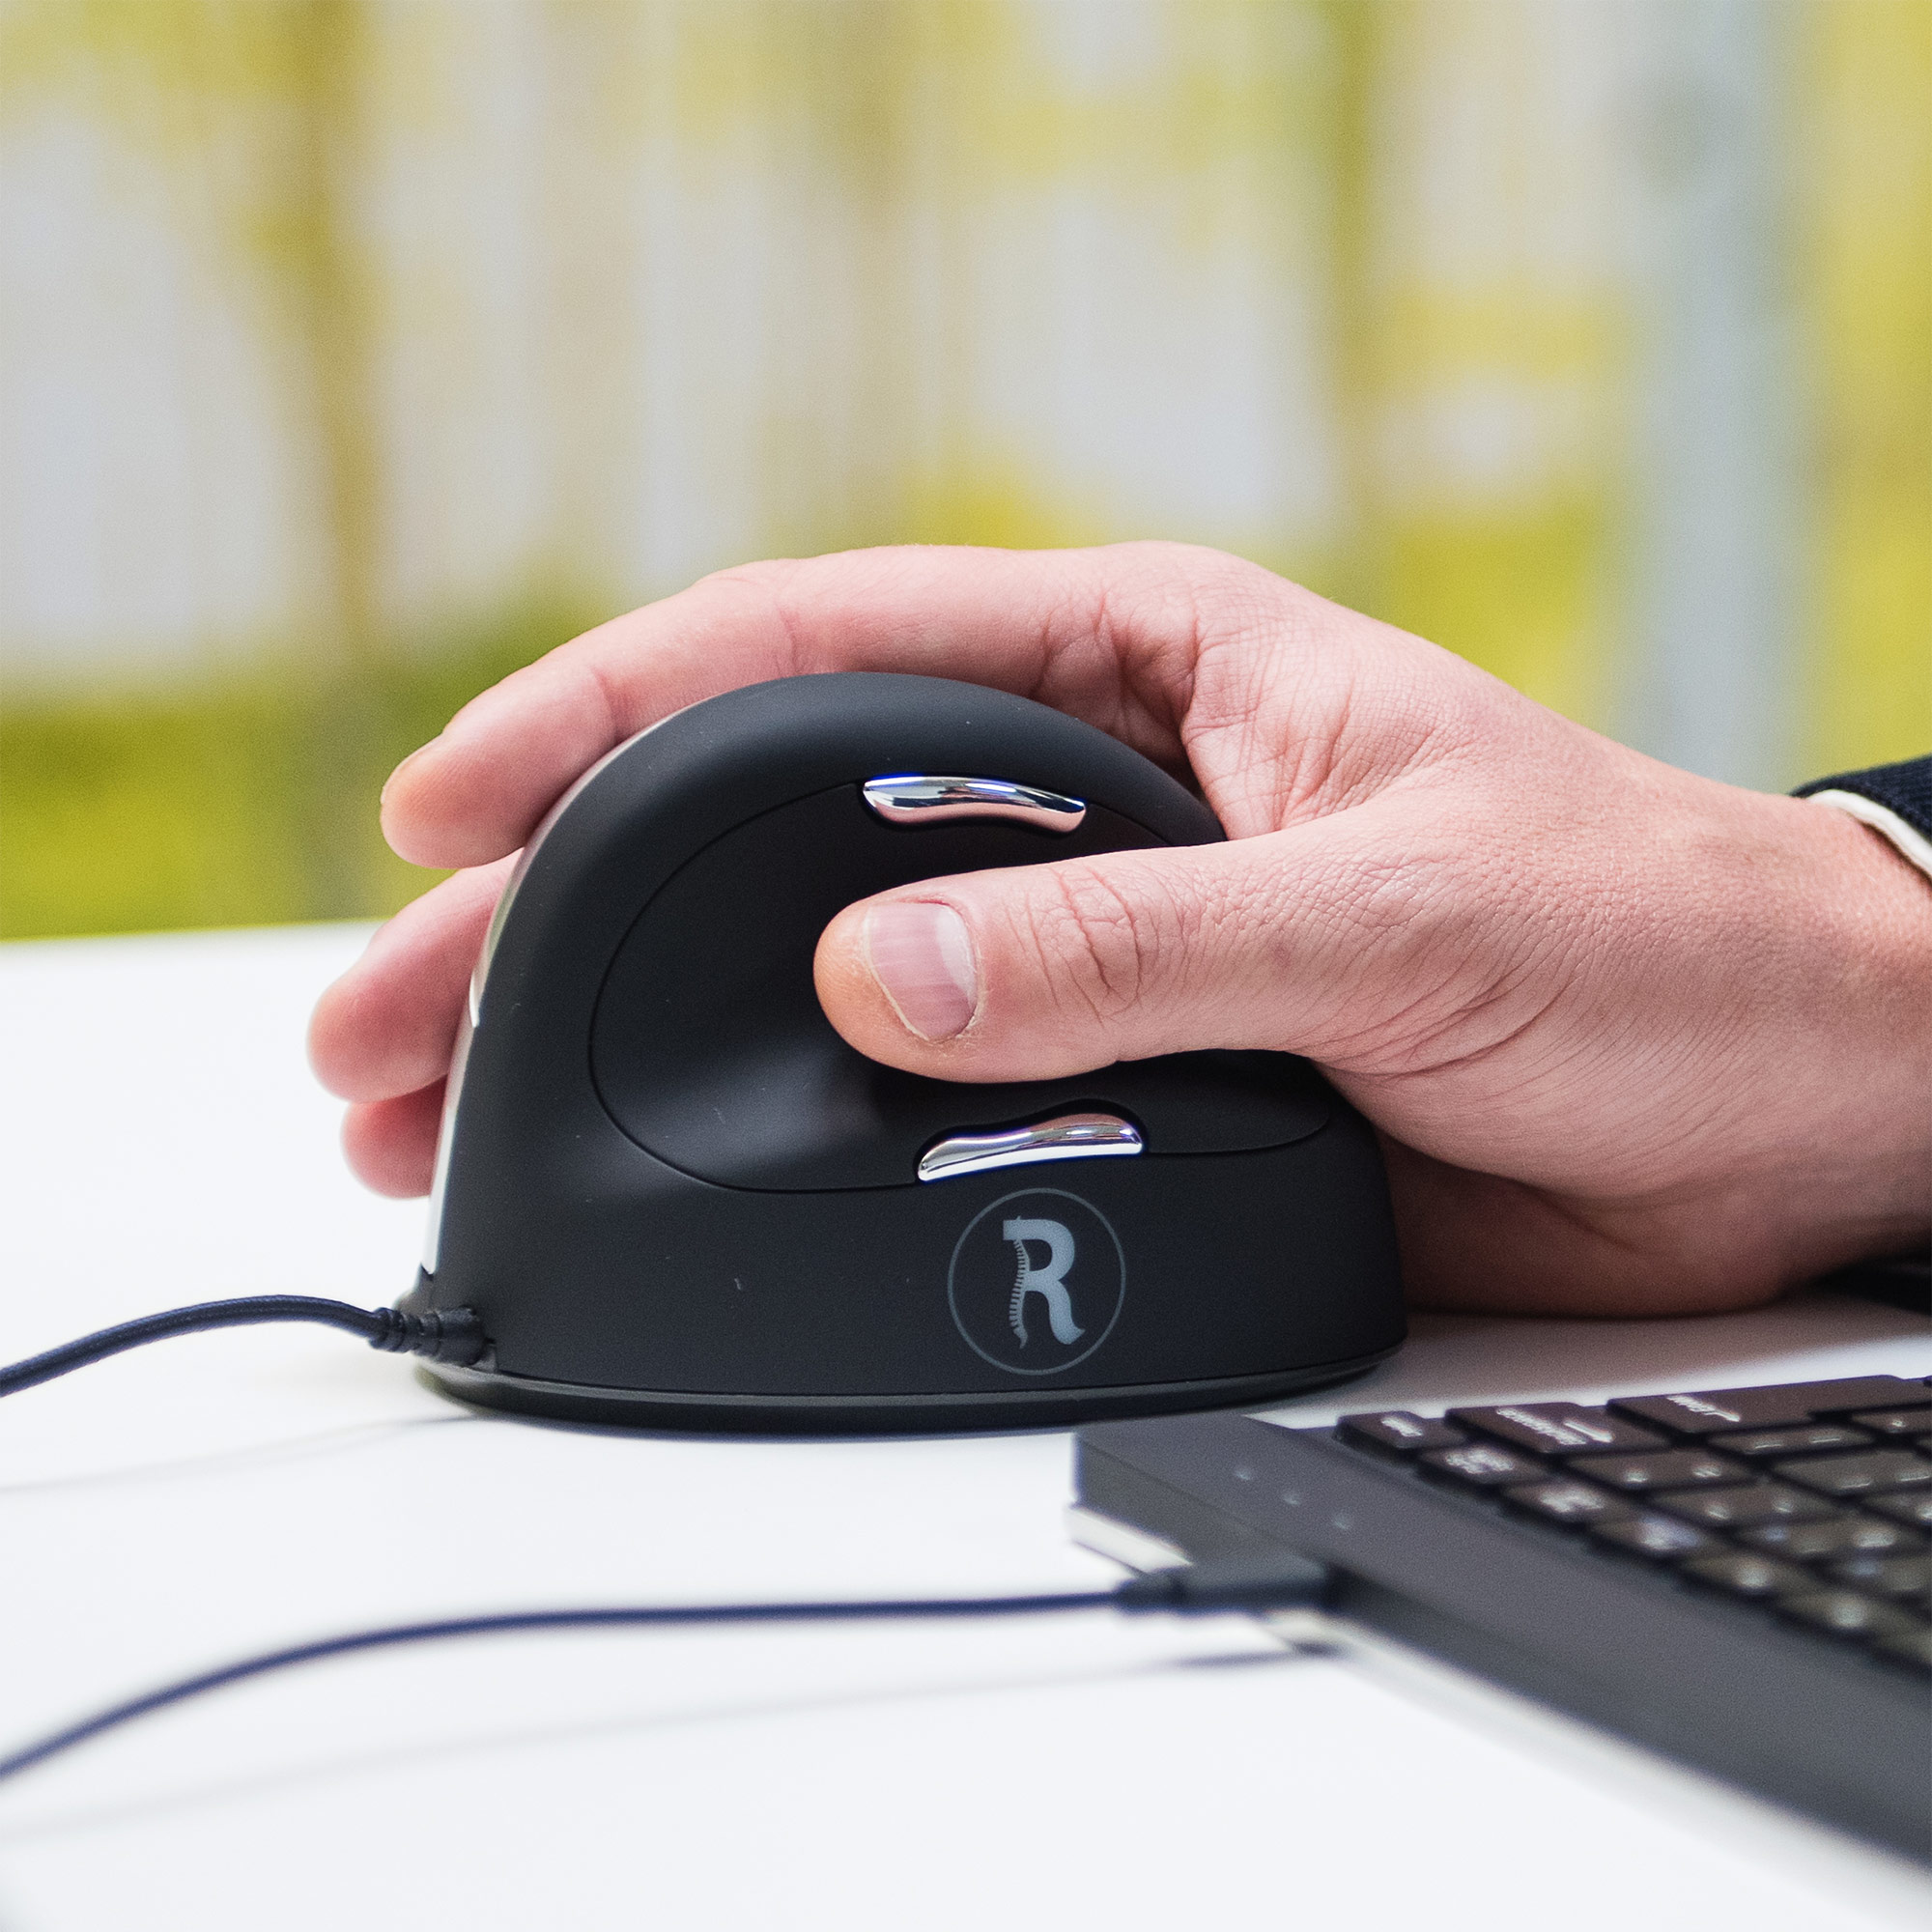 R-Go HE Mouse, Ergonomic mouse, Large (Hand Size above 185mm), Right Handed, wired - 2